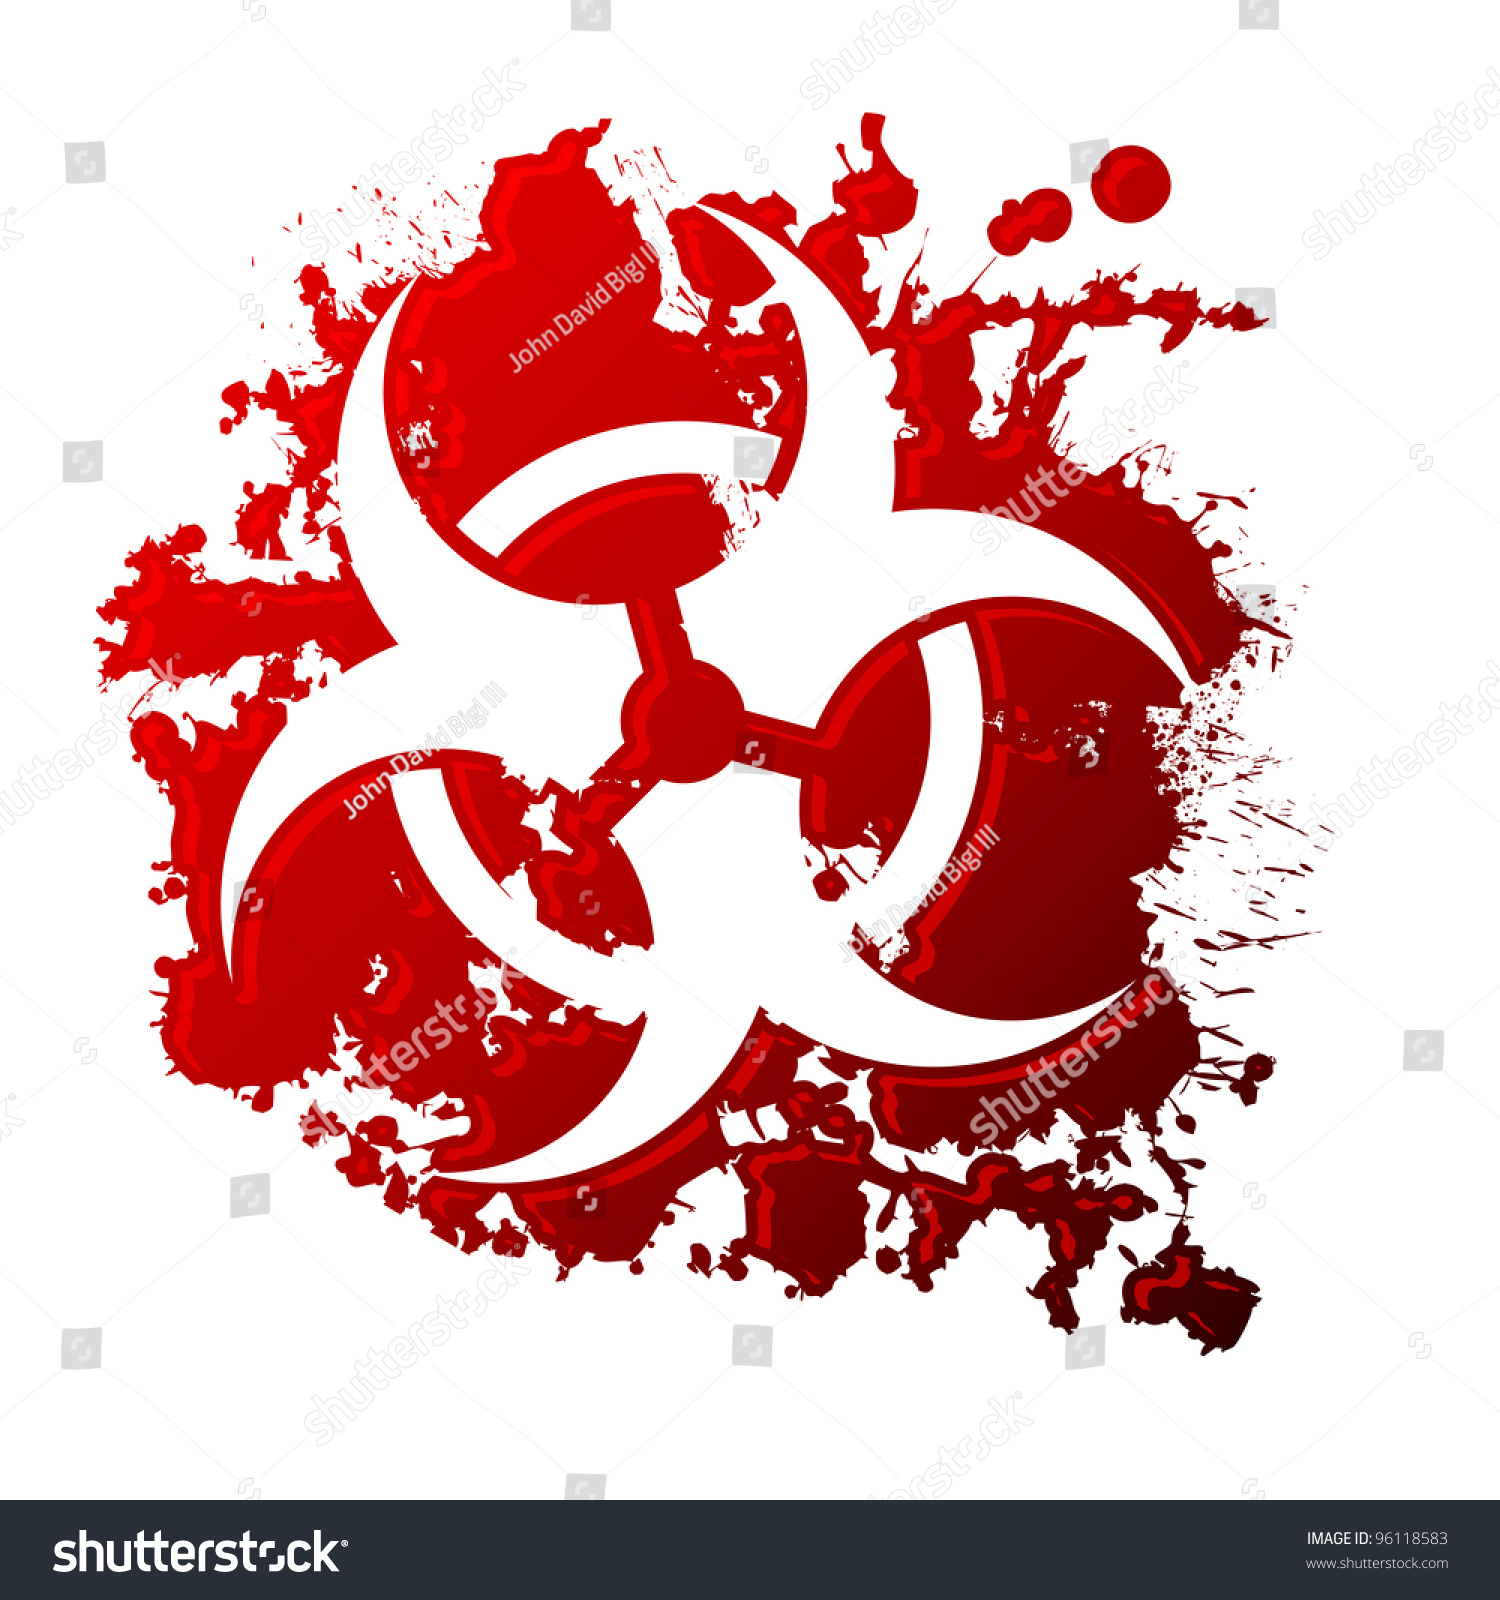 Biohazard symbol reversed out blood spill stock vector 96118583 a biohazard symbol reversed out of a blood spill biocorpaavc Image collections